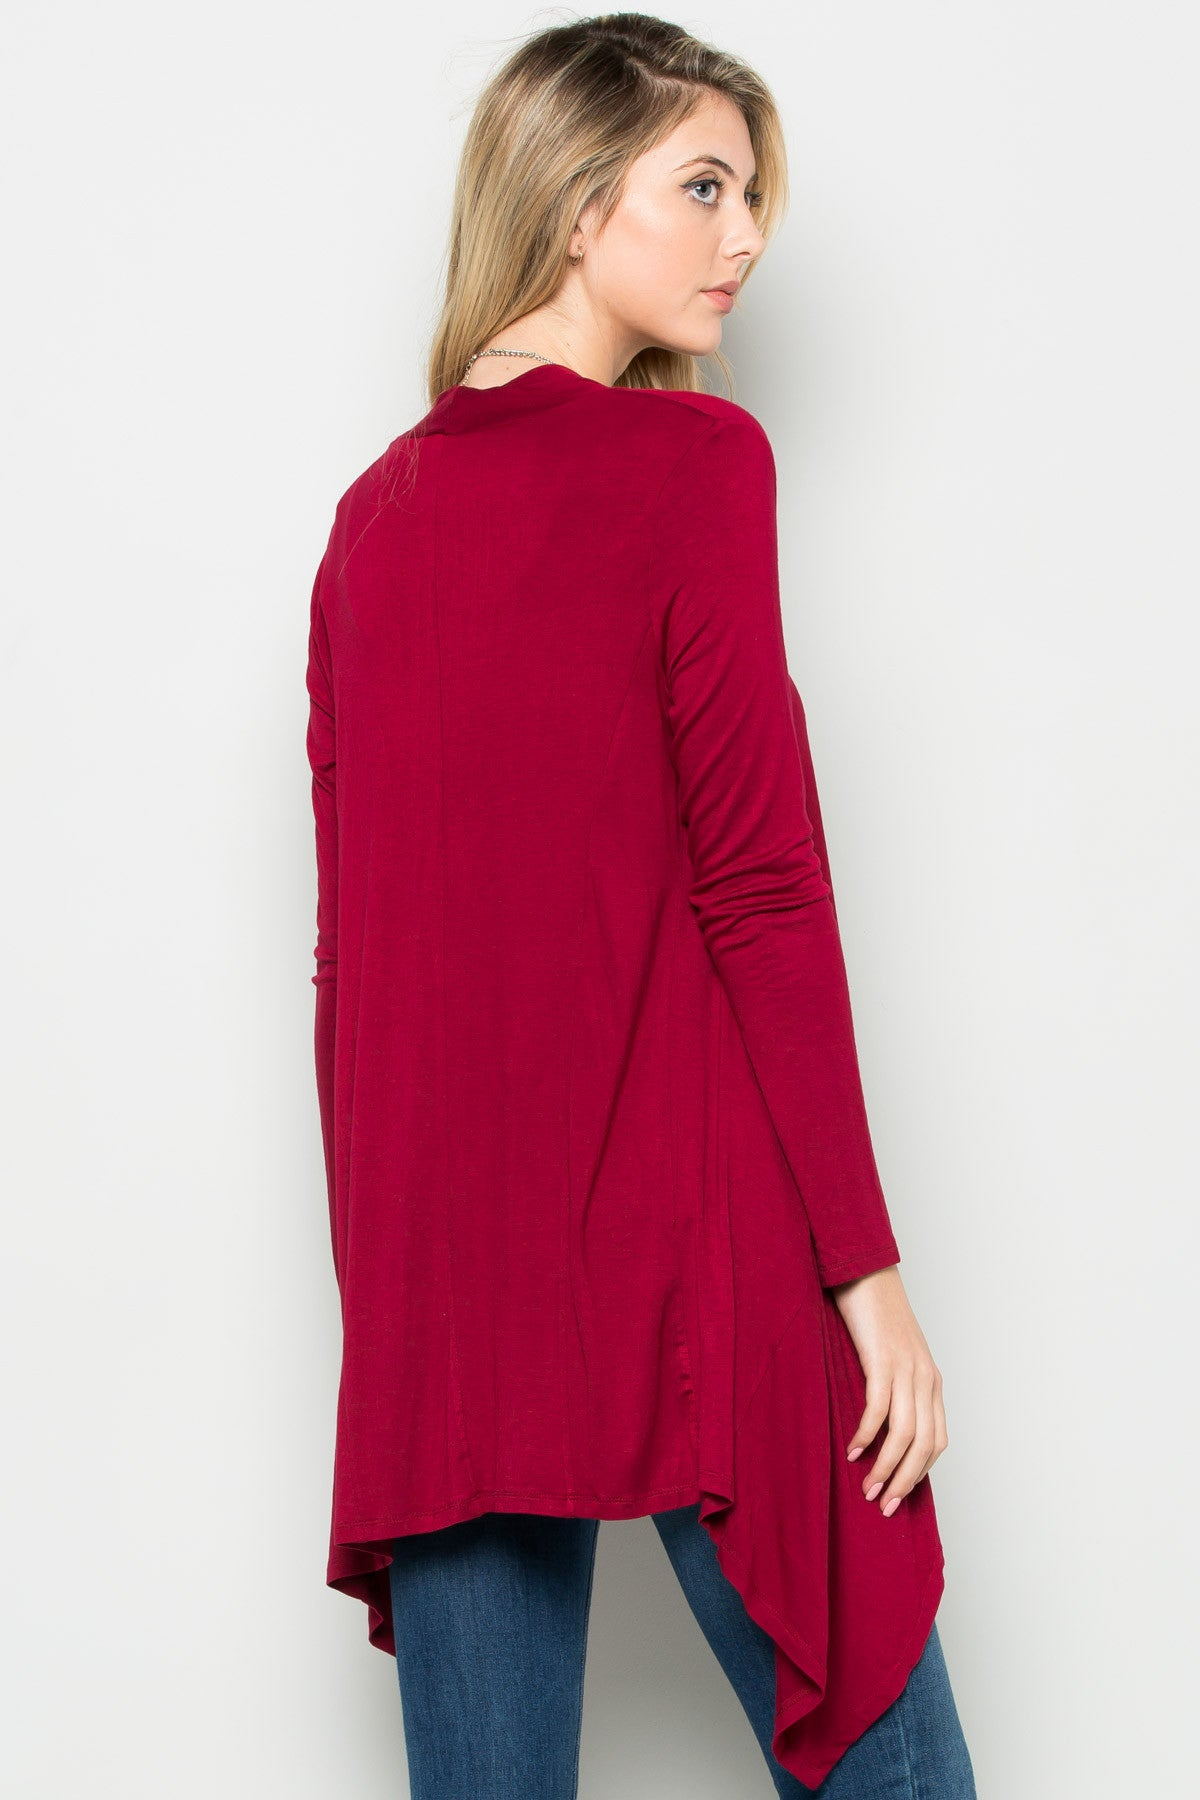 Burgundy Lightweight Long Sleeve Cardigan - Jacket - My Yuccie - 3